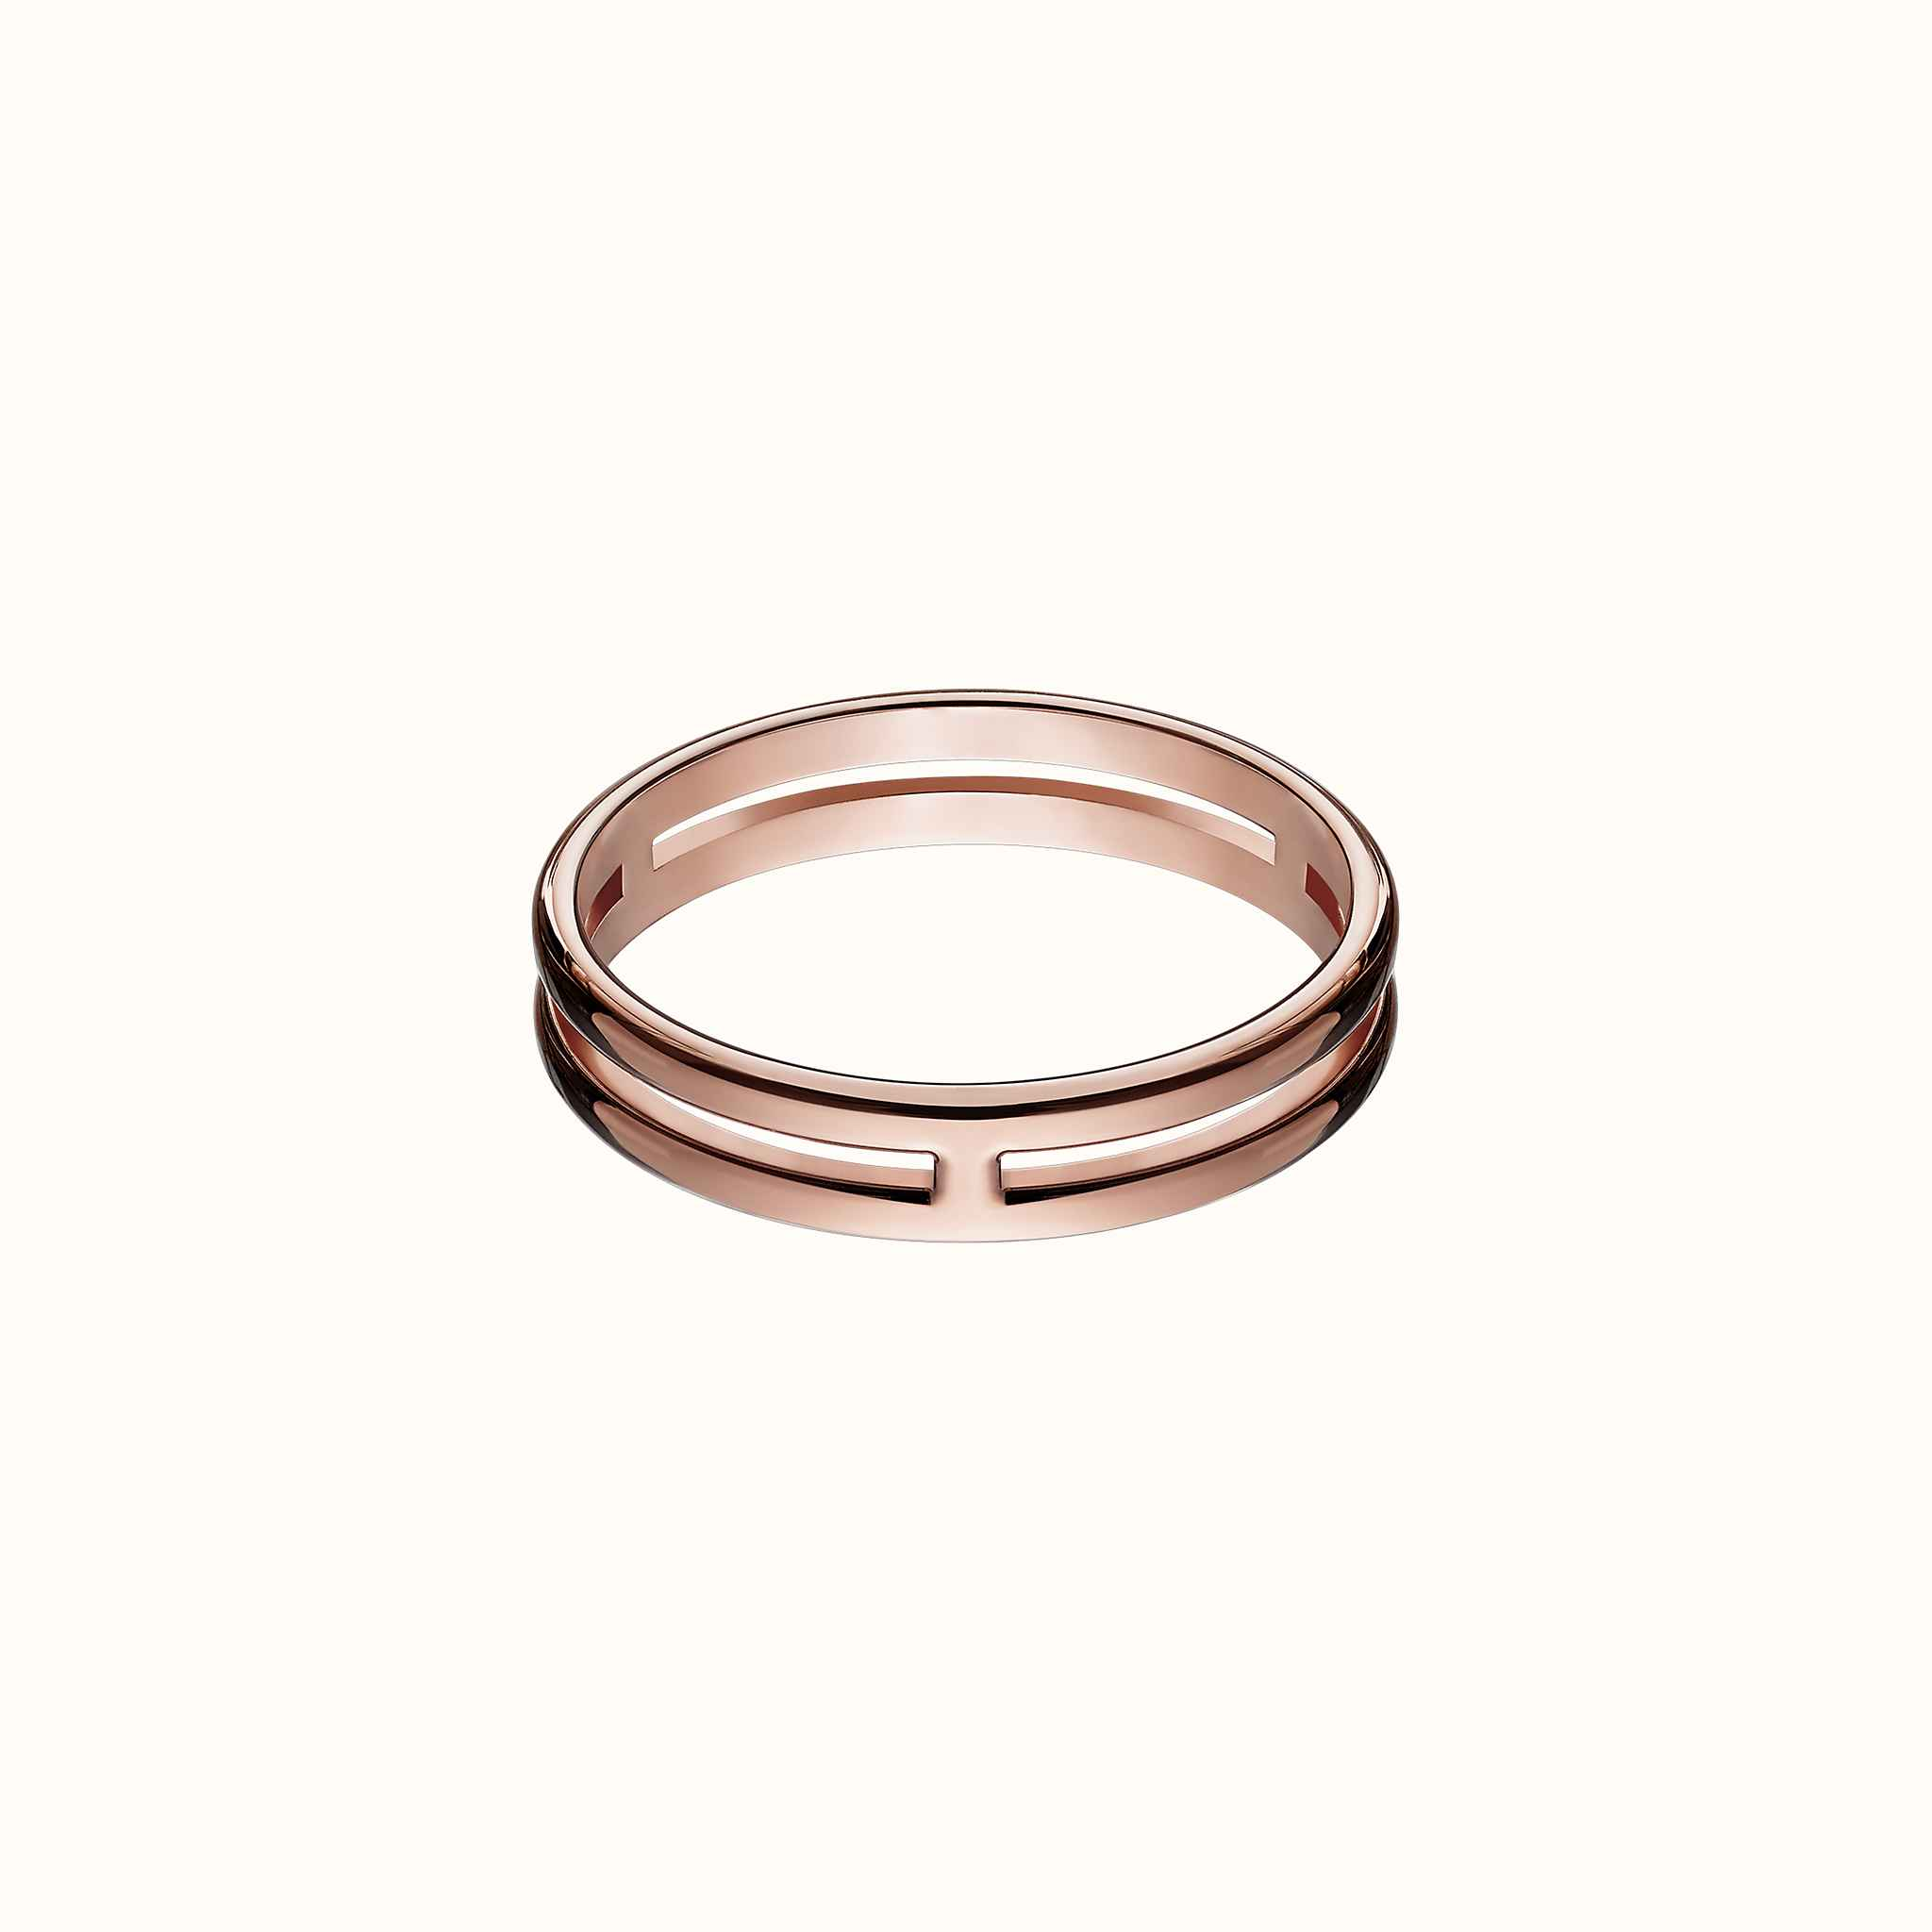 Scroll Up The Page Down: Handmade Wedding Bands New Hshire At Websimilar.org